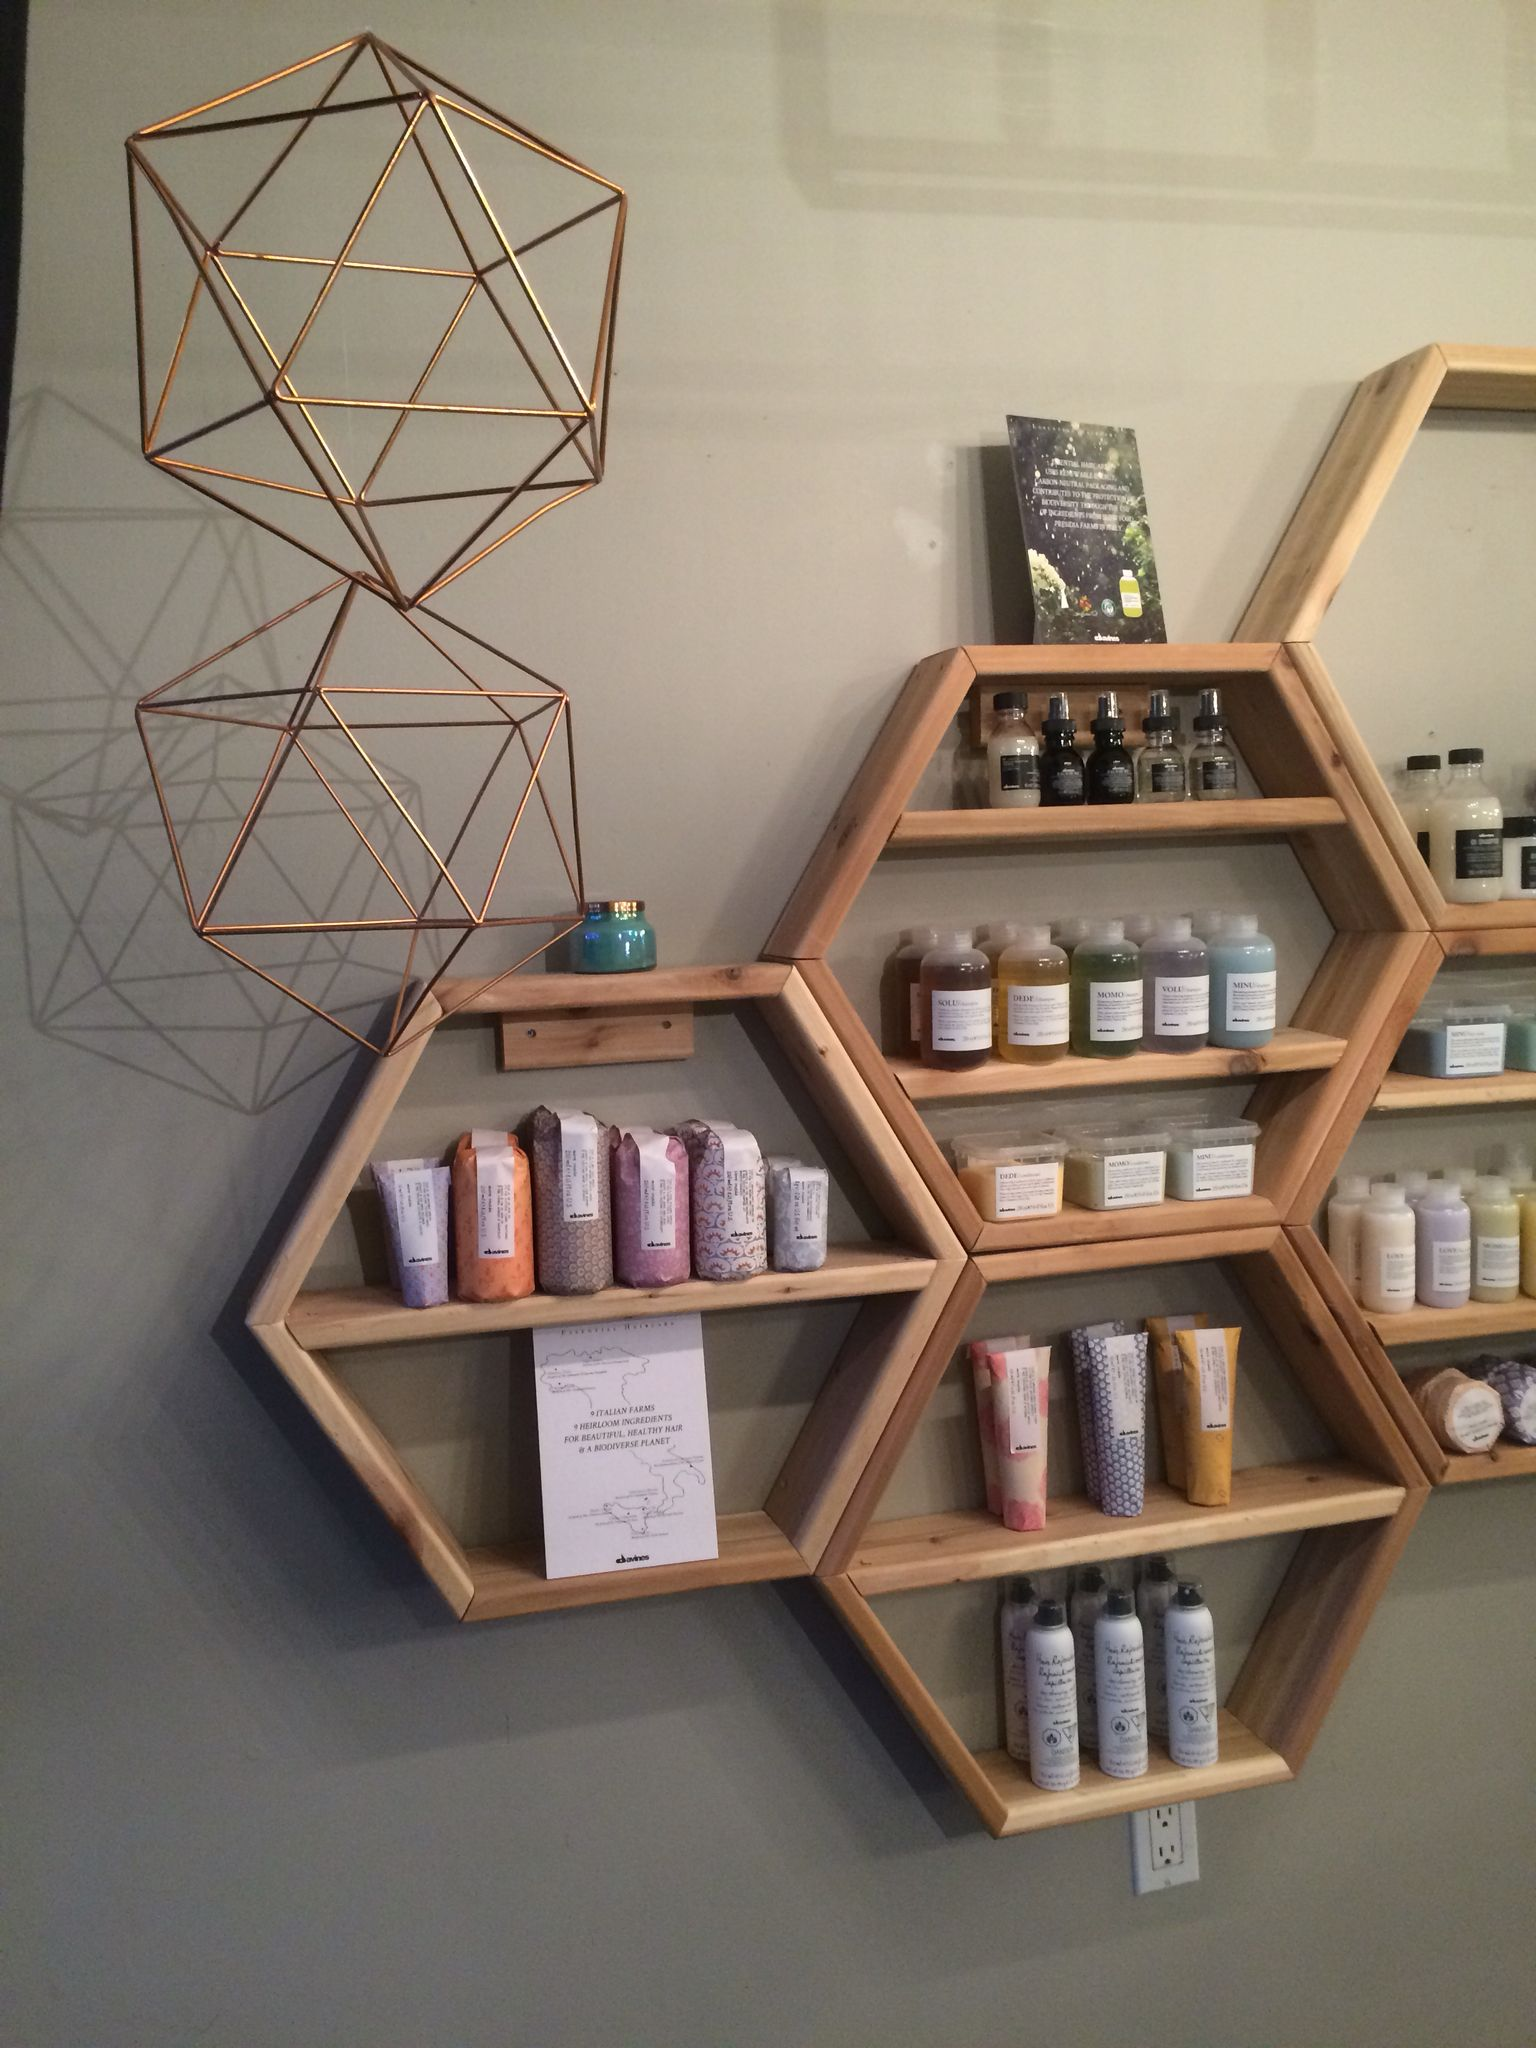 DAVINES, COPPER U0026 MINT HAIR SALON INC! #salon_decor_hairdressing